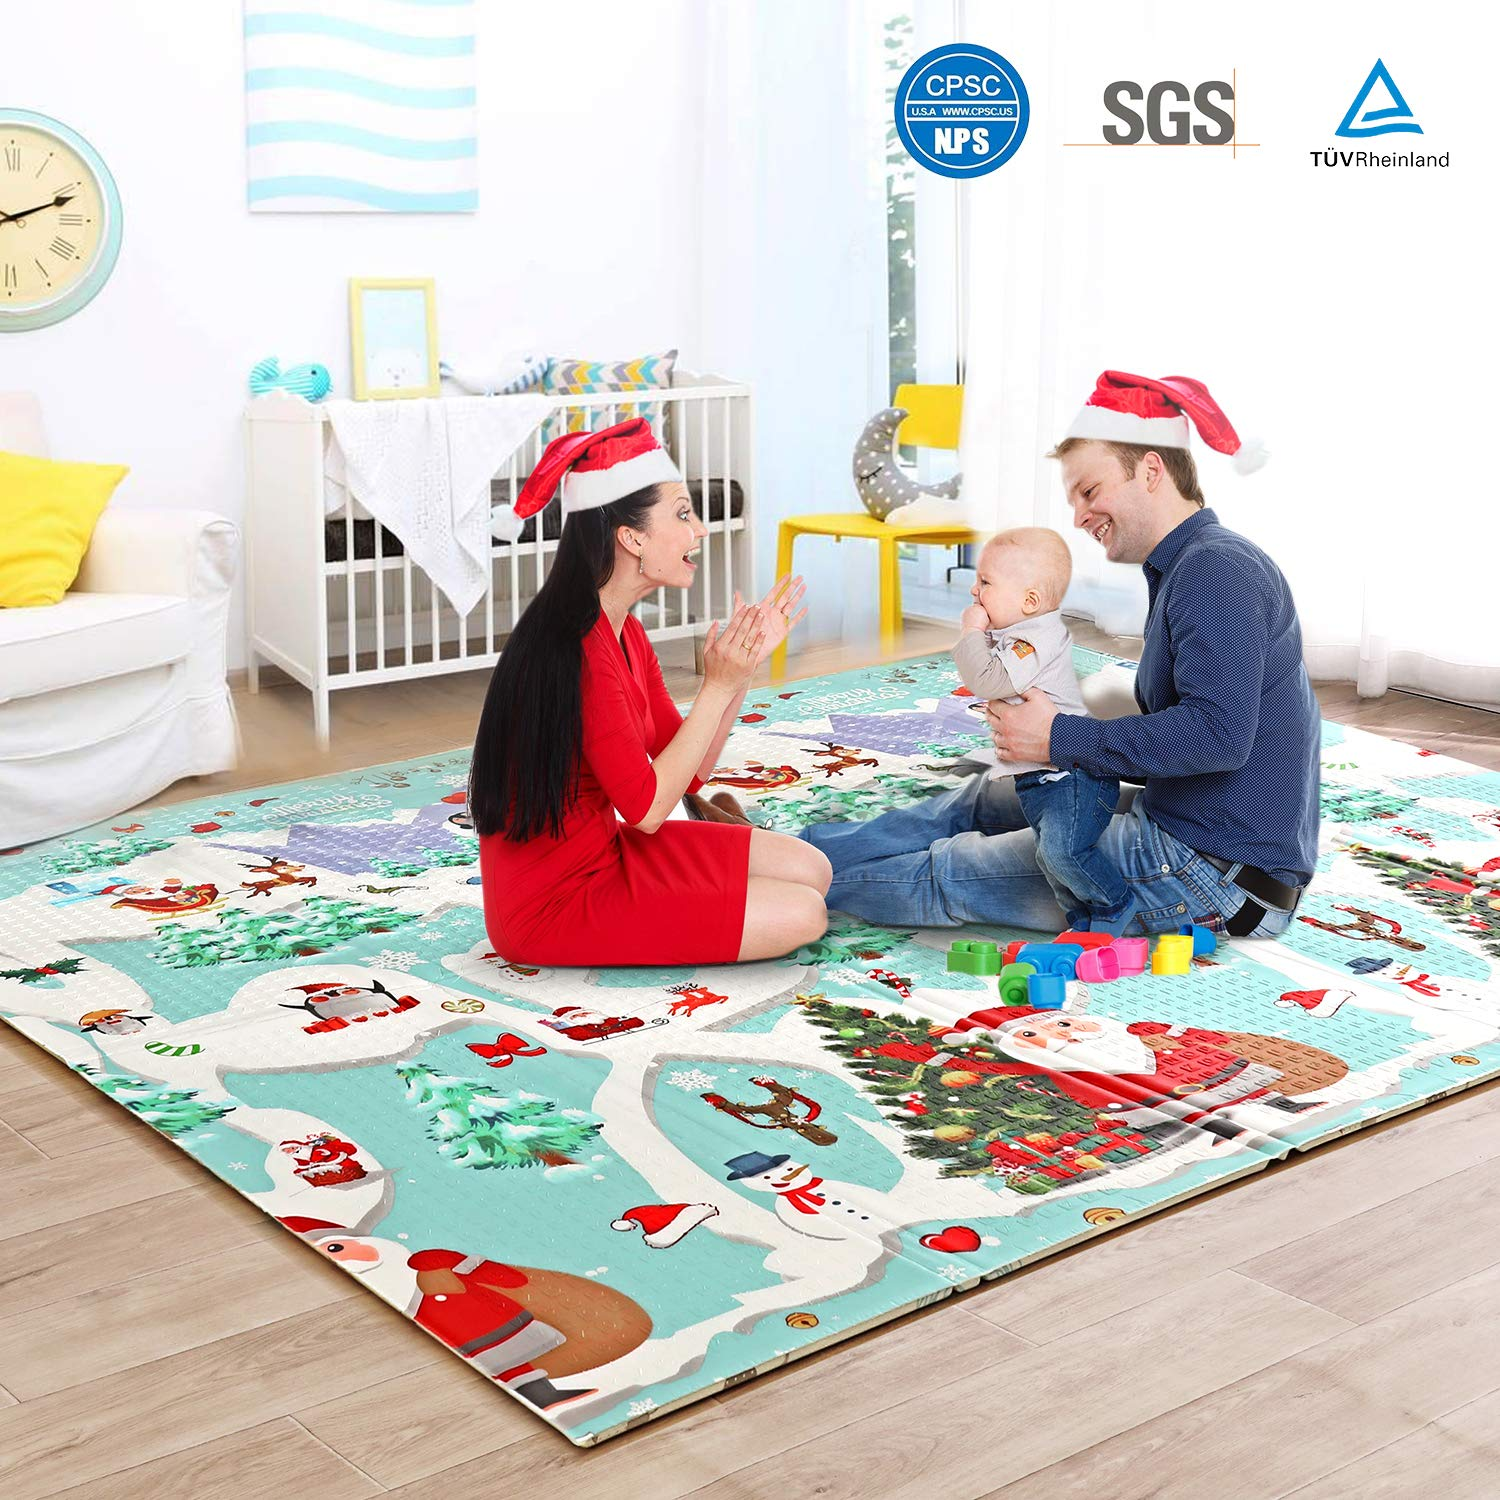 Baby Play Mat Foam Floor Pad with Reversible Christmas Print, 79 x 71 x0.6 Waterproof Foldable, Easy Clean Playmat for Infant, Toddler, Babies Learning to Crawl, Kid s Room,Nontoxic, Safe, Durable